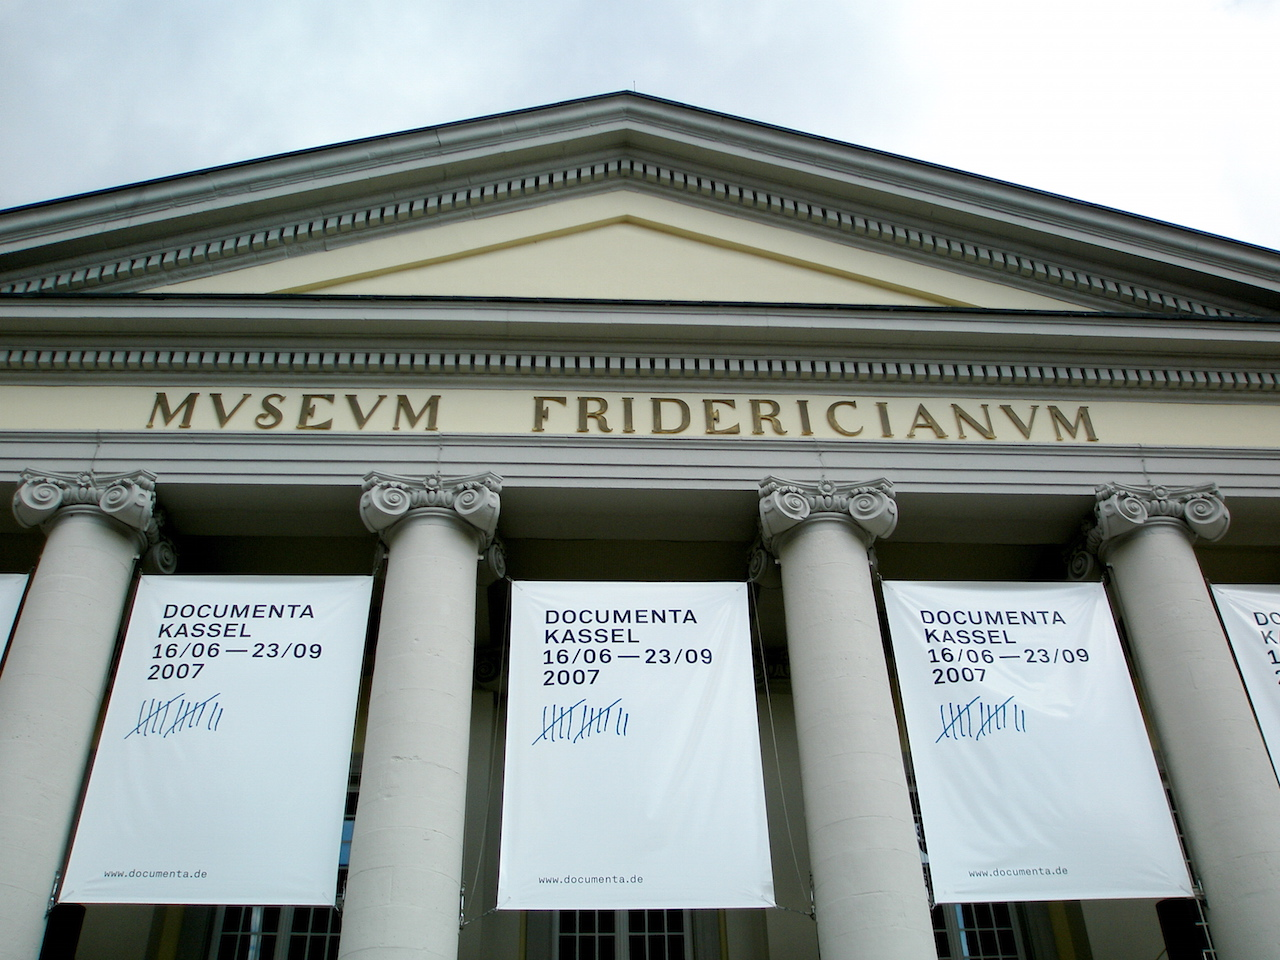 The Museum Fridericianum in Kassel, the main venue for Documenta (photo by Martin aka Maha/Flickr)